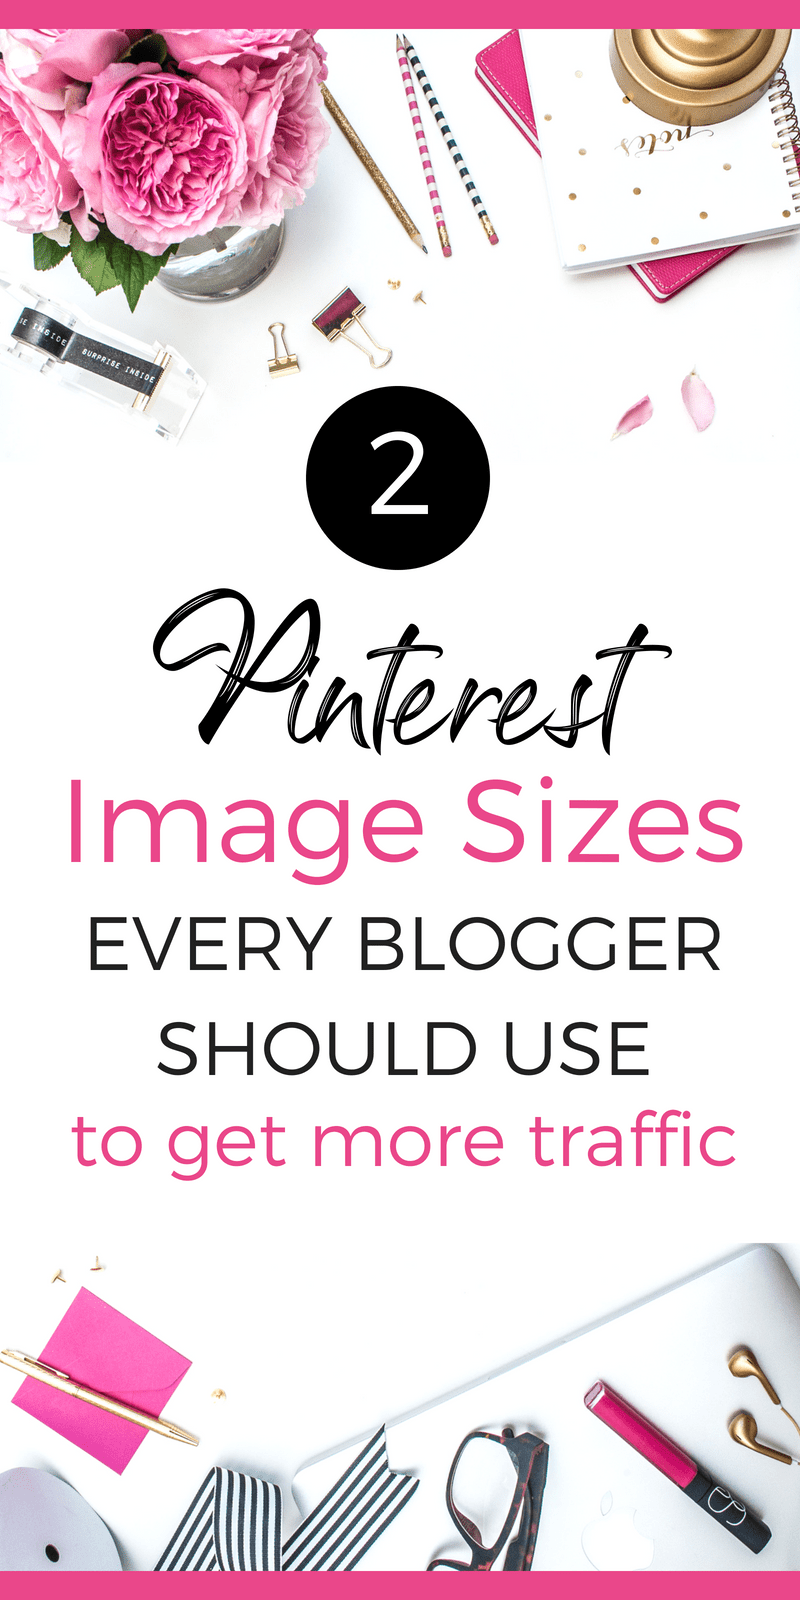 If you're a blogger, there are TWO image sizes that you should be creating for Pinterest to get MORE TRAFFIC to your site. See the full post to read the recommended sizes, as well as what size performs best for driving traffic to your blog. #Pinterest #Pinterestmarketing #blogging #bloggingtips #blogtraffic #blogging101